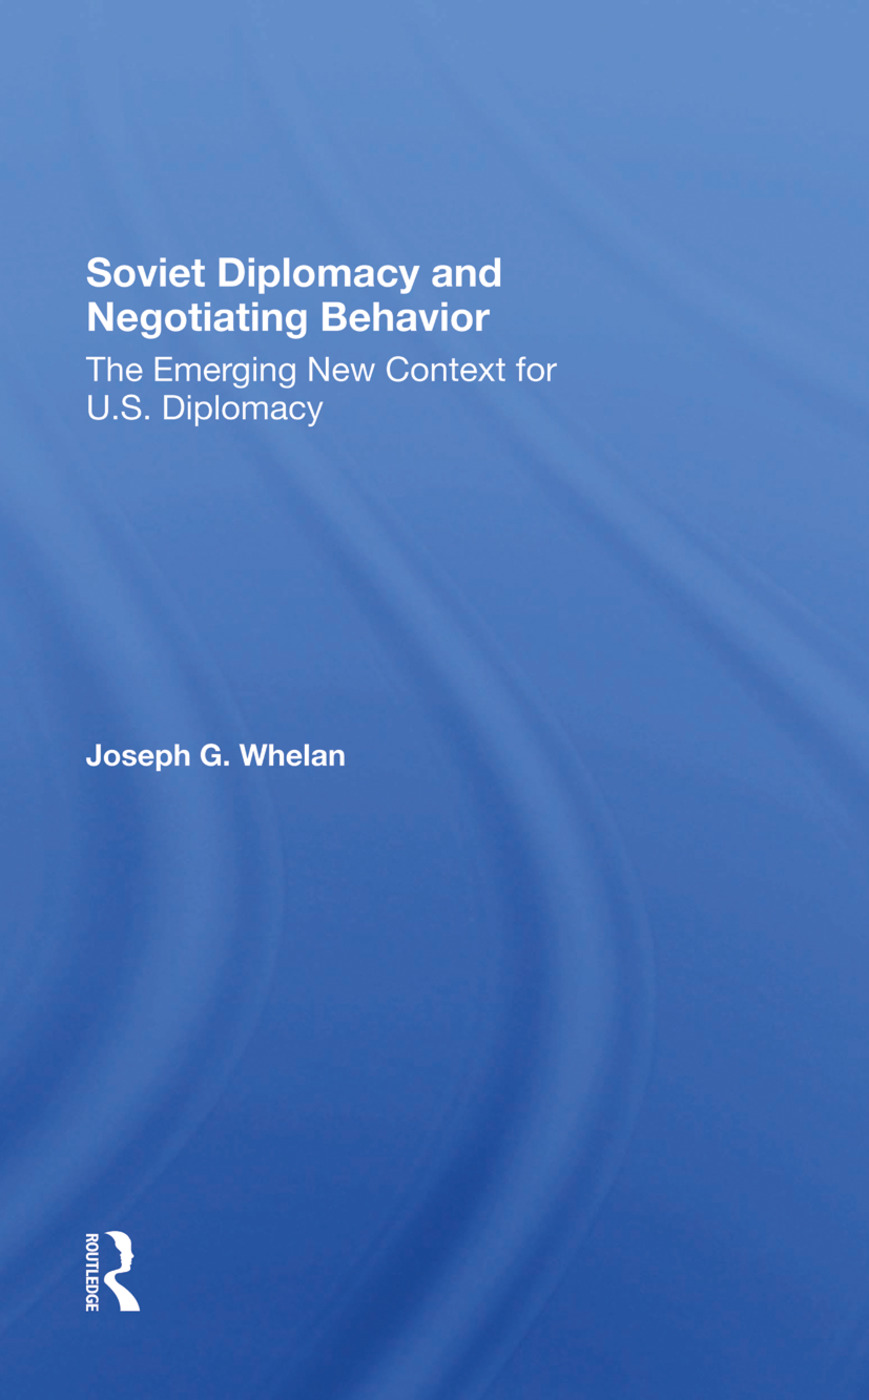 Soviet Diplomacy And Negotiating Behavior: The Emerging New Context For U.s. Diplomacy, 1st Edition (Hardback) book cover